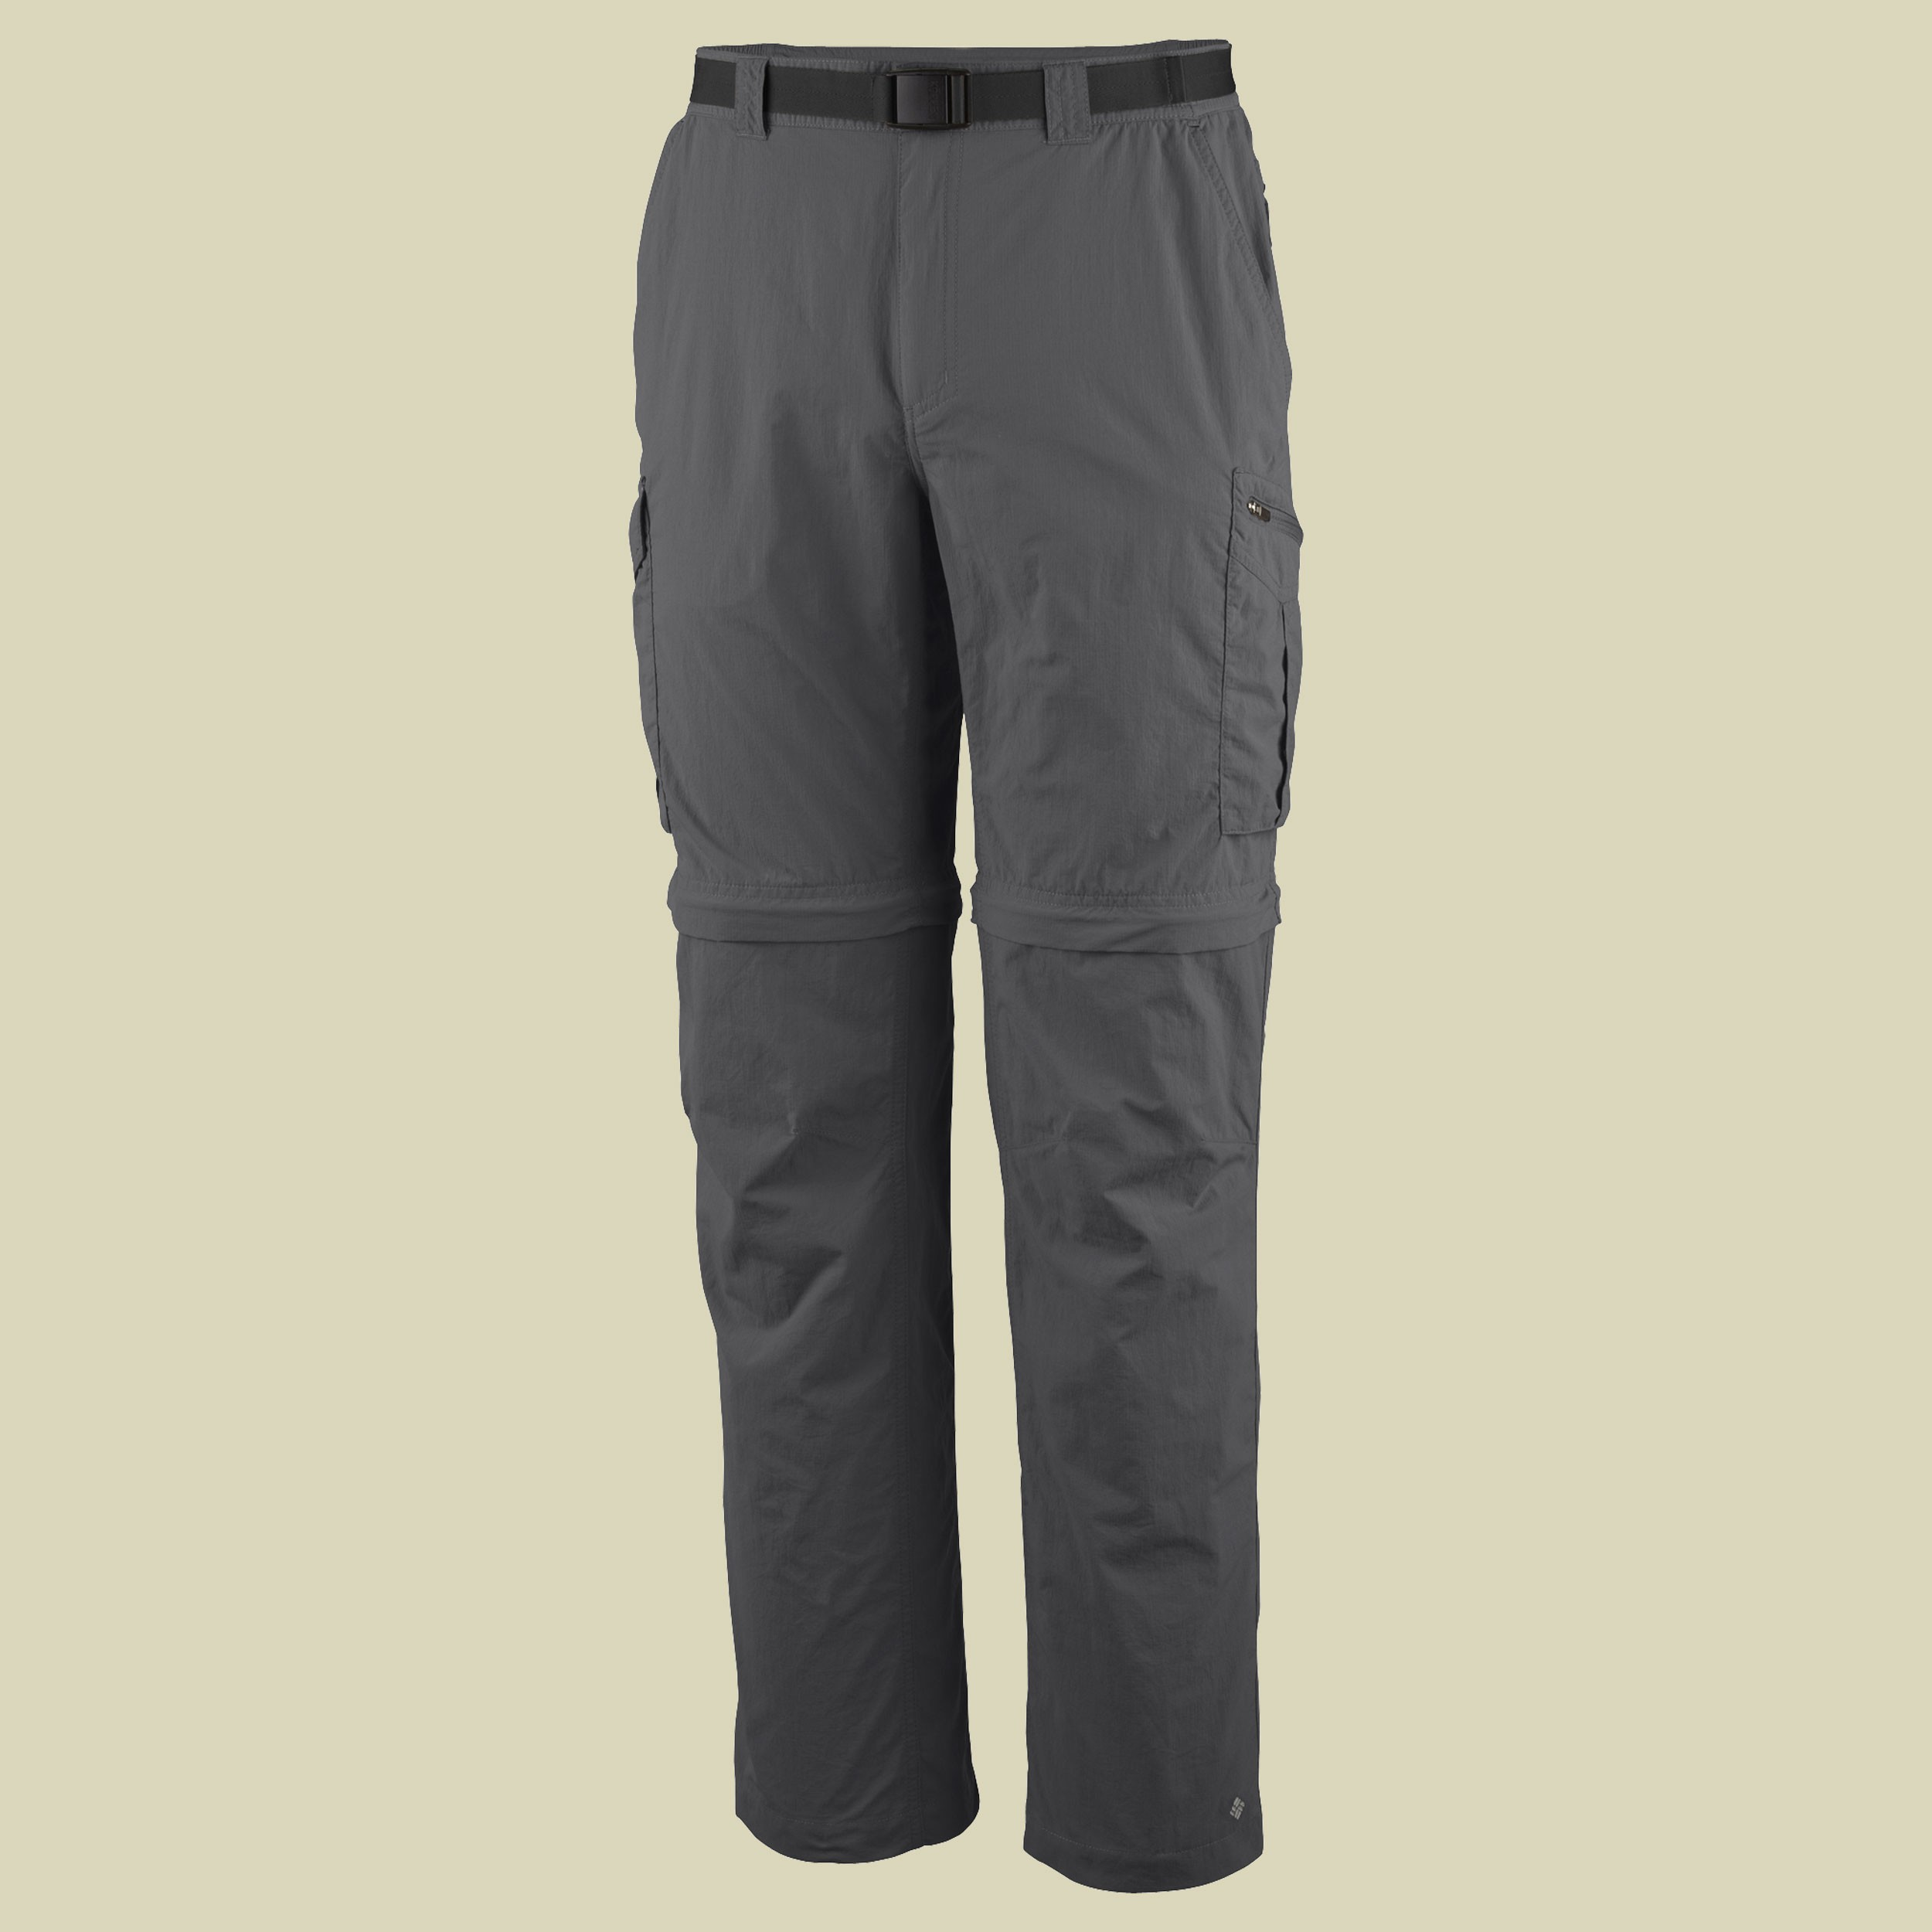 Silver Ridge Convertible Pant Men